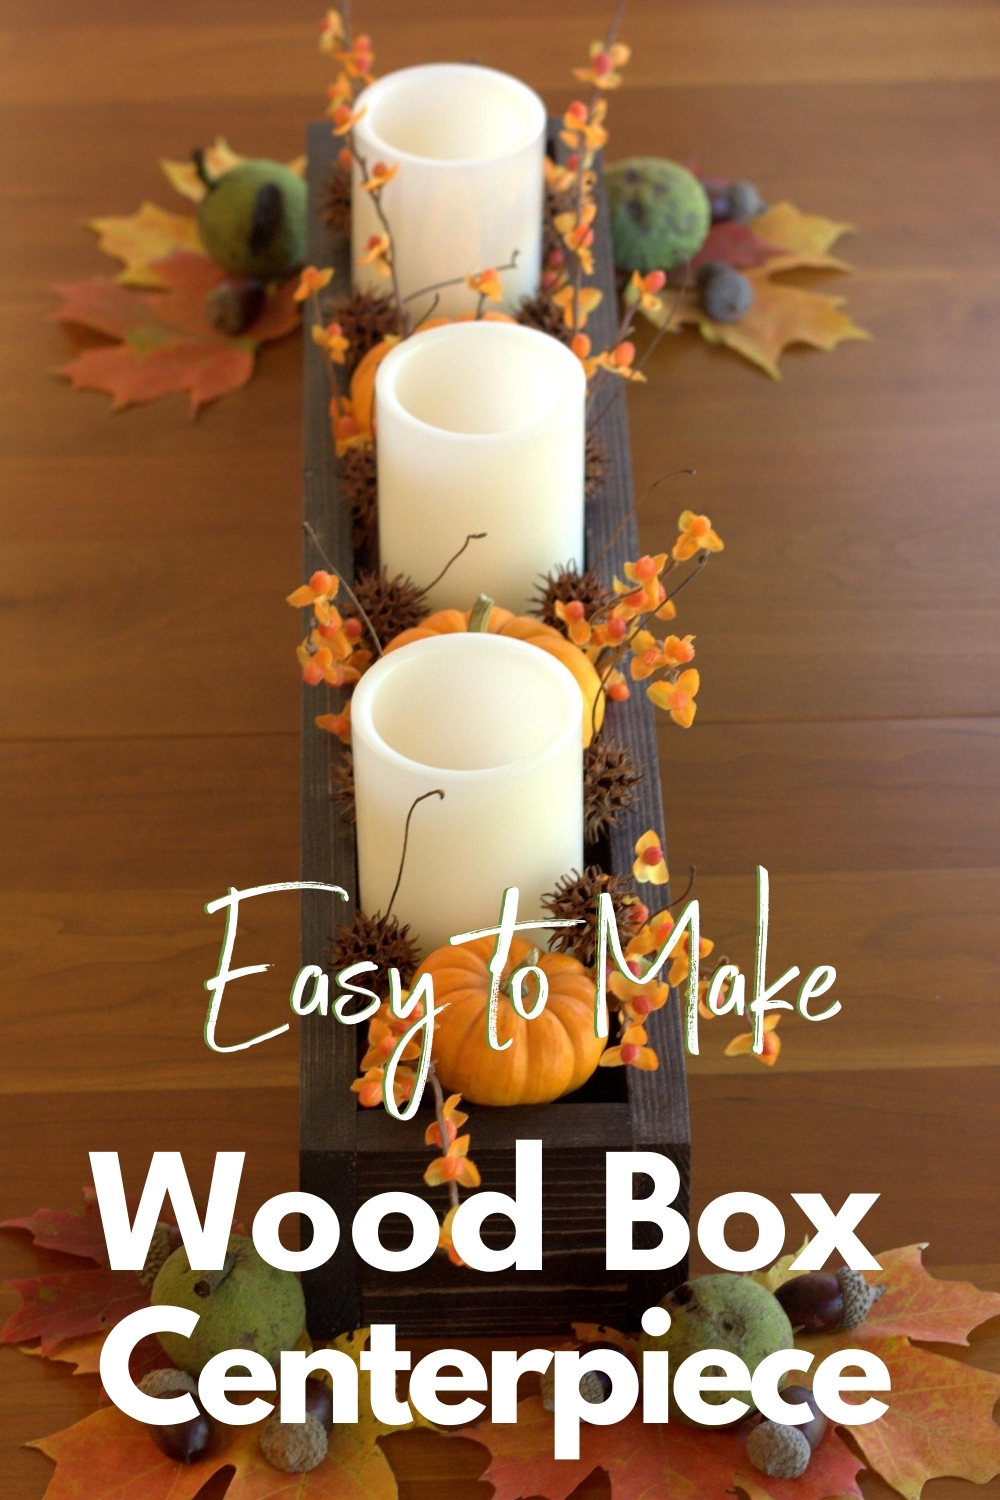 How To Make A Wood Box Centerpiece For Under 10 Wood Box Centerpiece Wood Centerpieces Wood Boxes